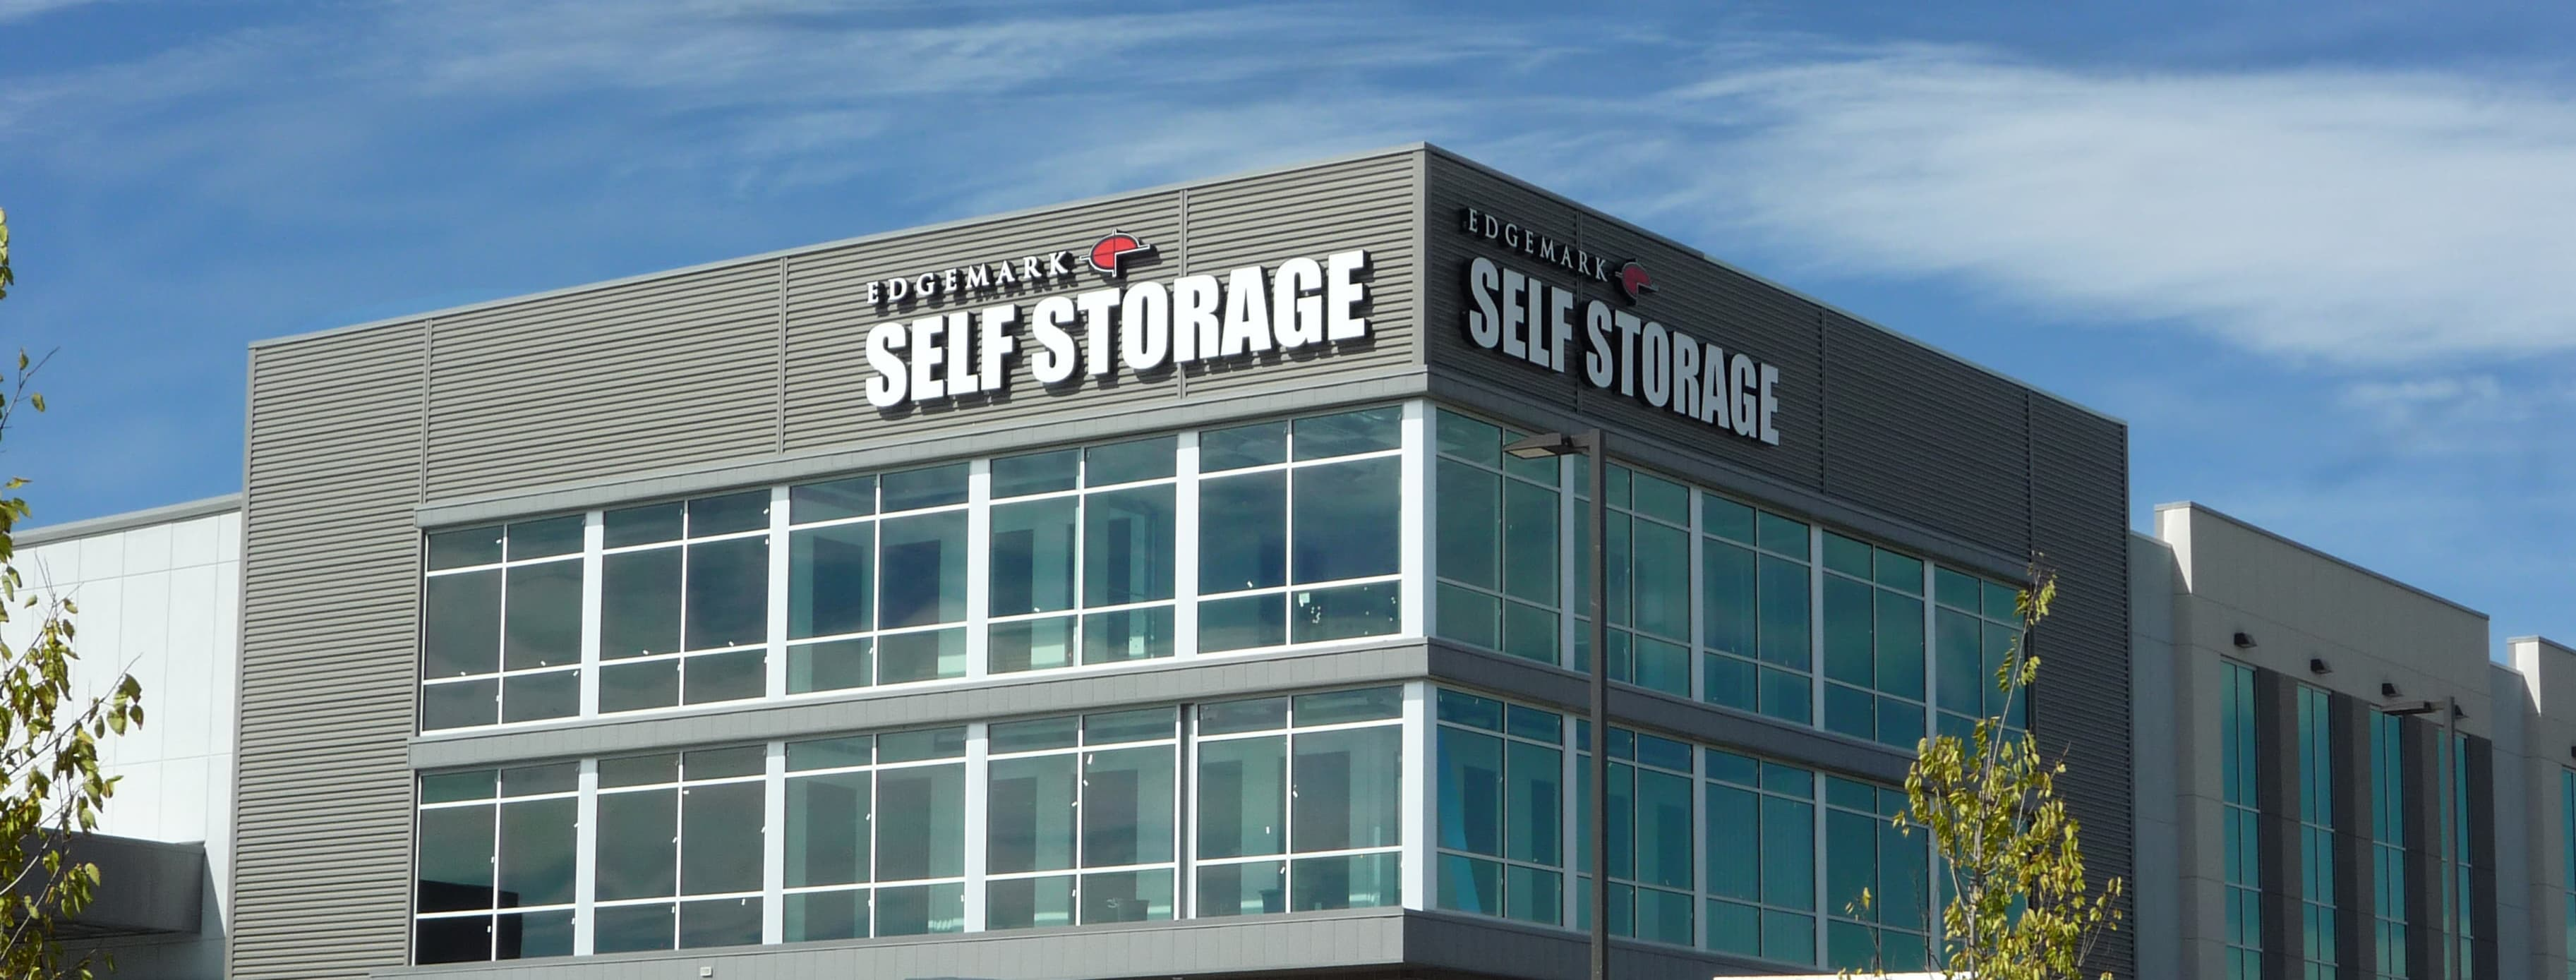 Self storage at Edgemark Self Storage - Arvada in Arvada, Colorado